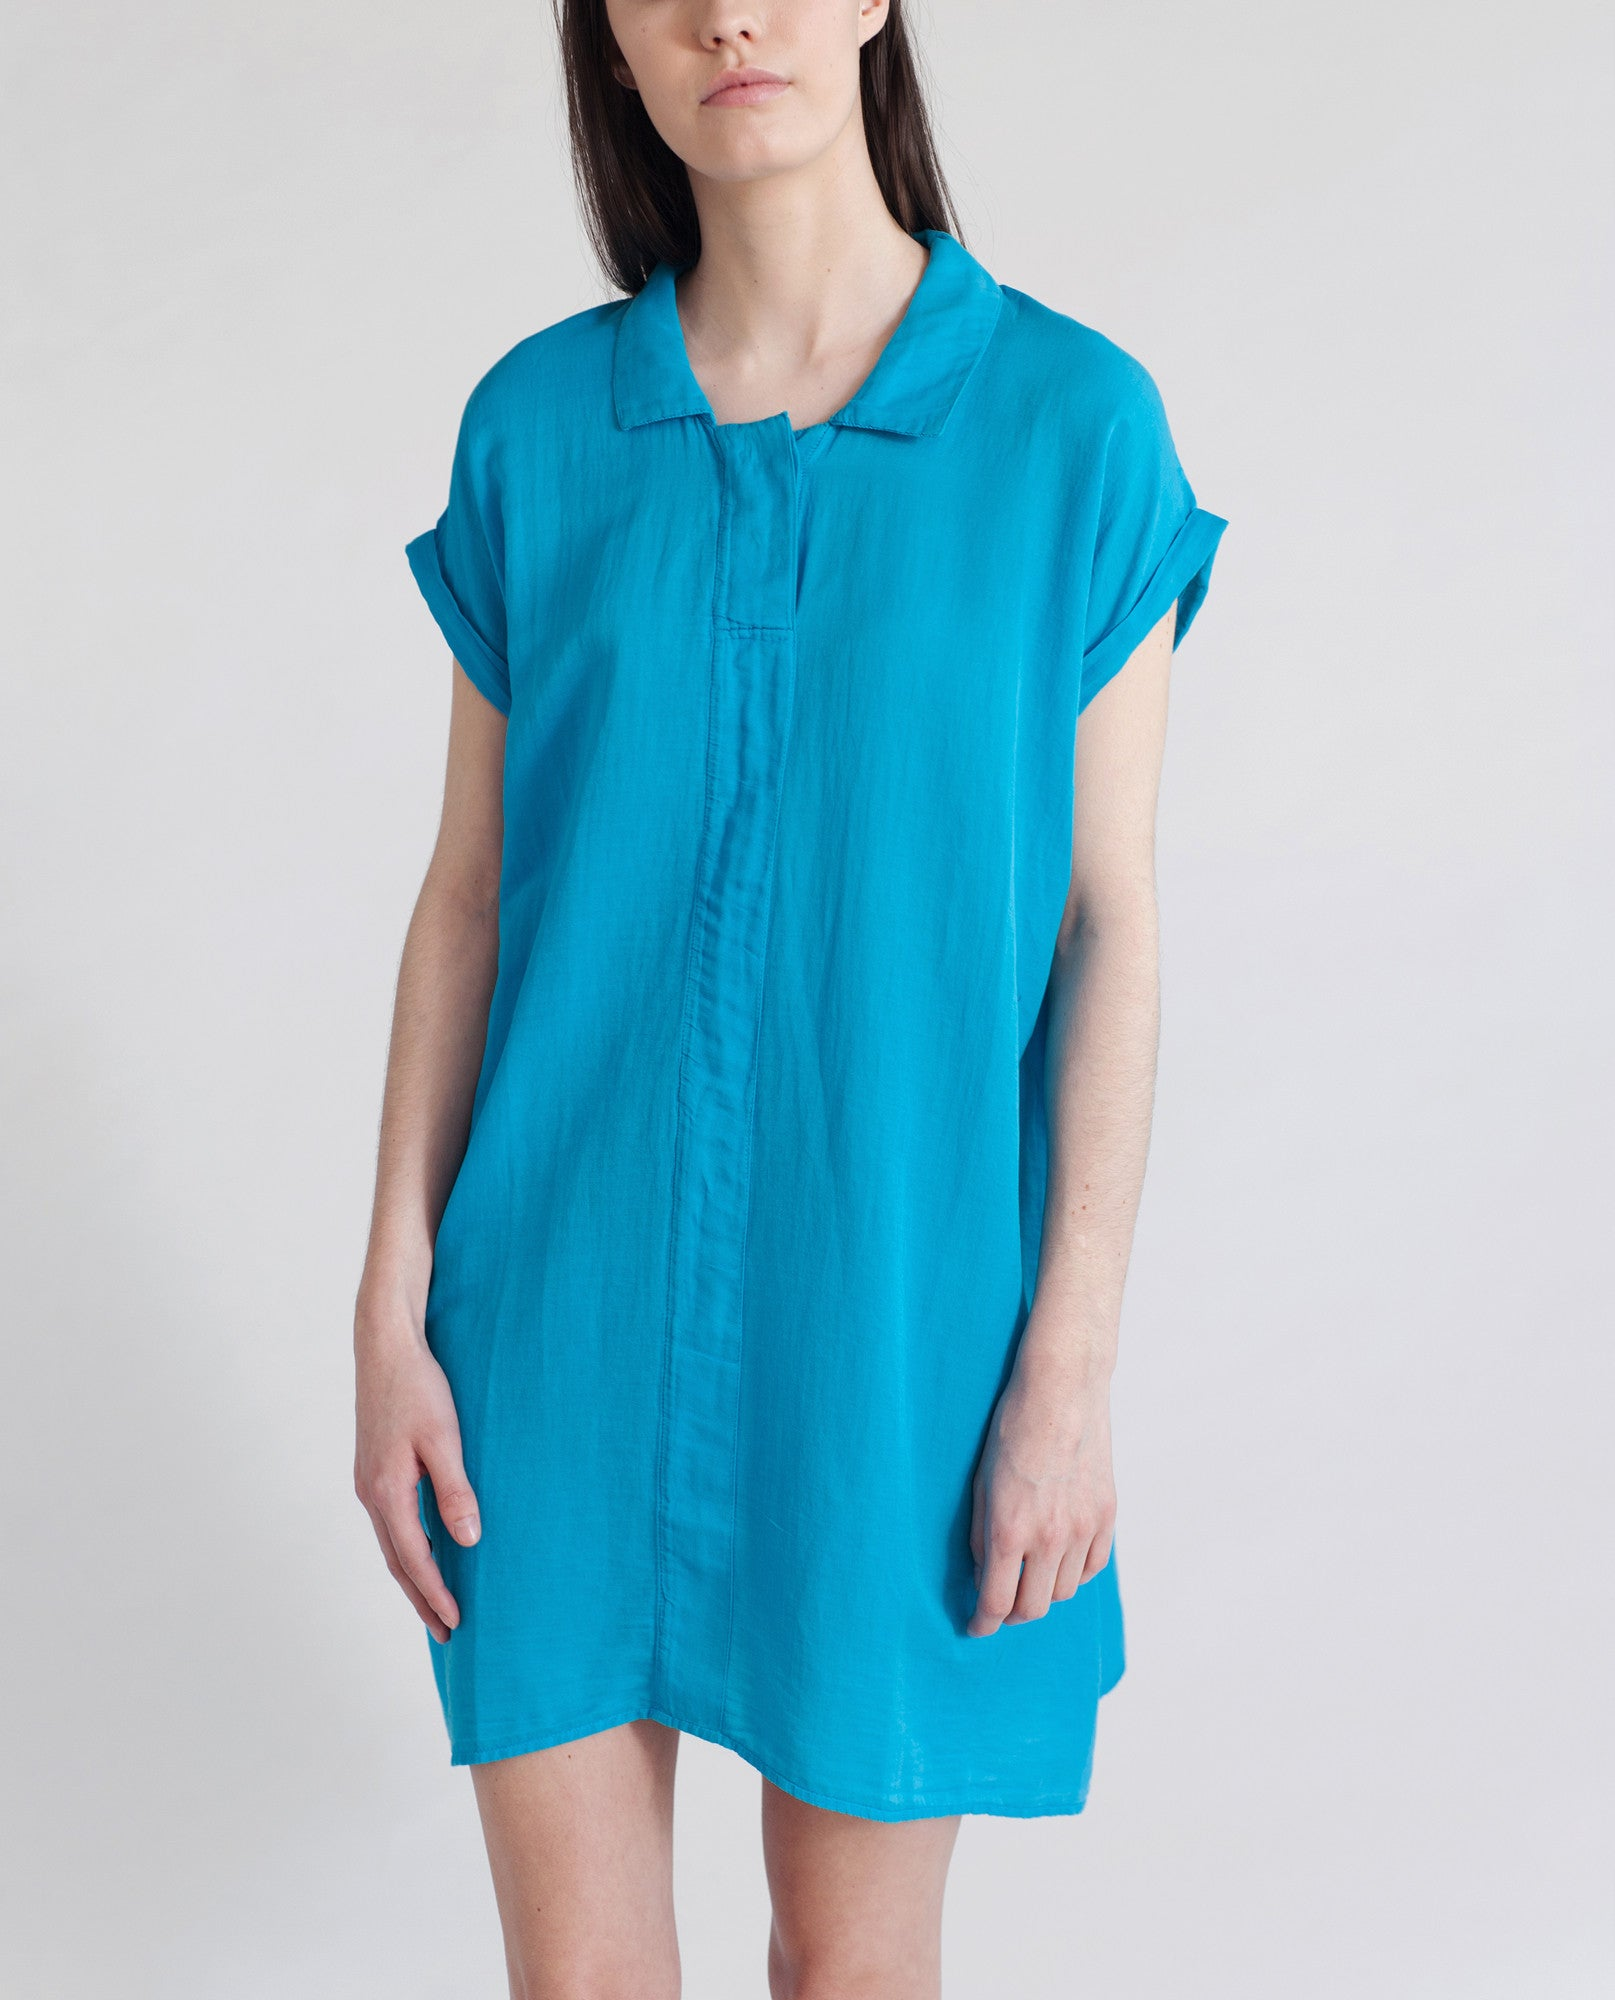 LOTUS Cotton And Silk Dress In Bright Blue from Beaumont Organic